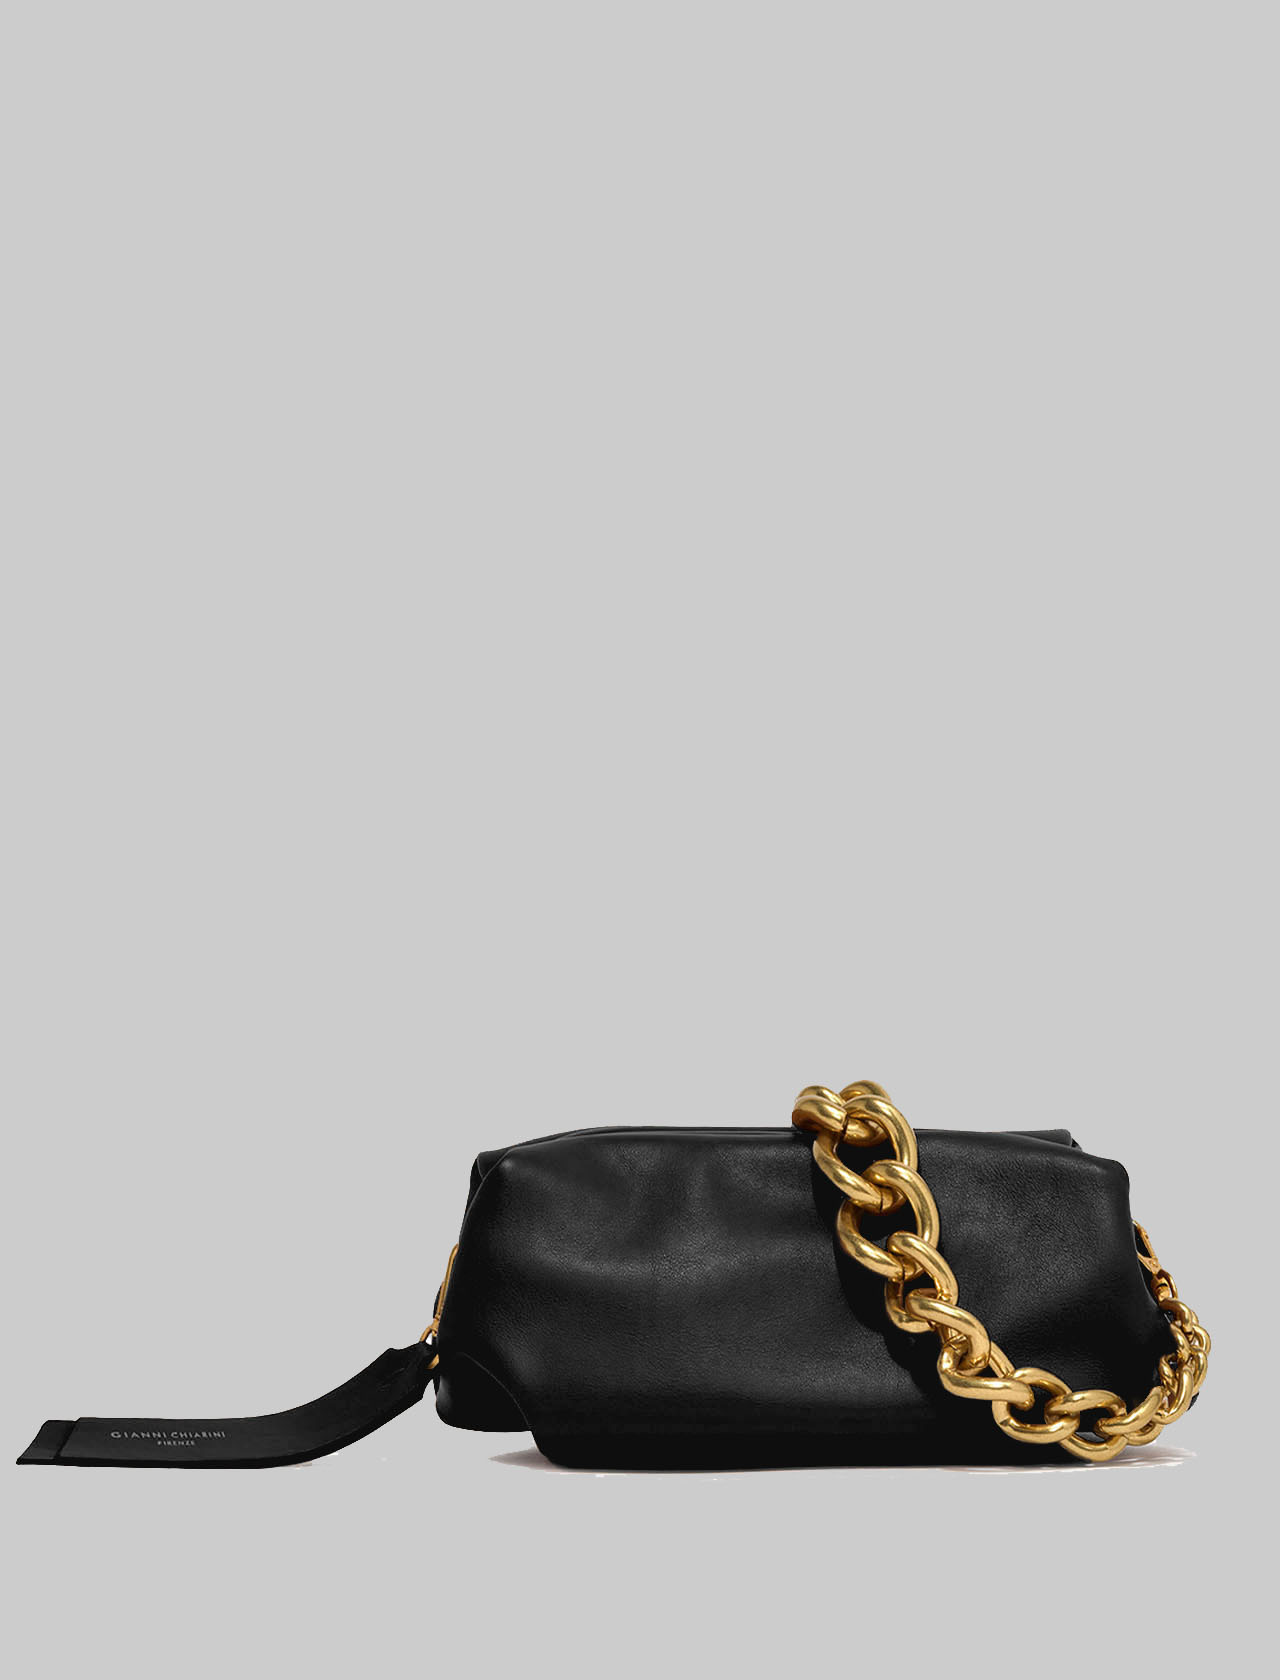 Small Colette Woman Bag In Black Leather With Gold Chain And Removable And Adjustable Shoulder Strap Gianni Chiarini | Bags and backpacks | BS8404001